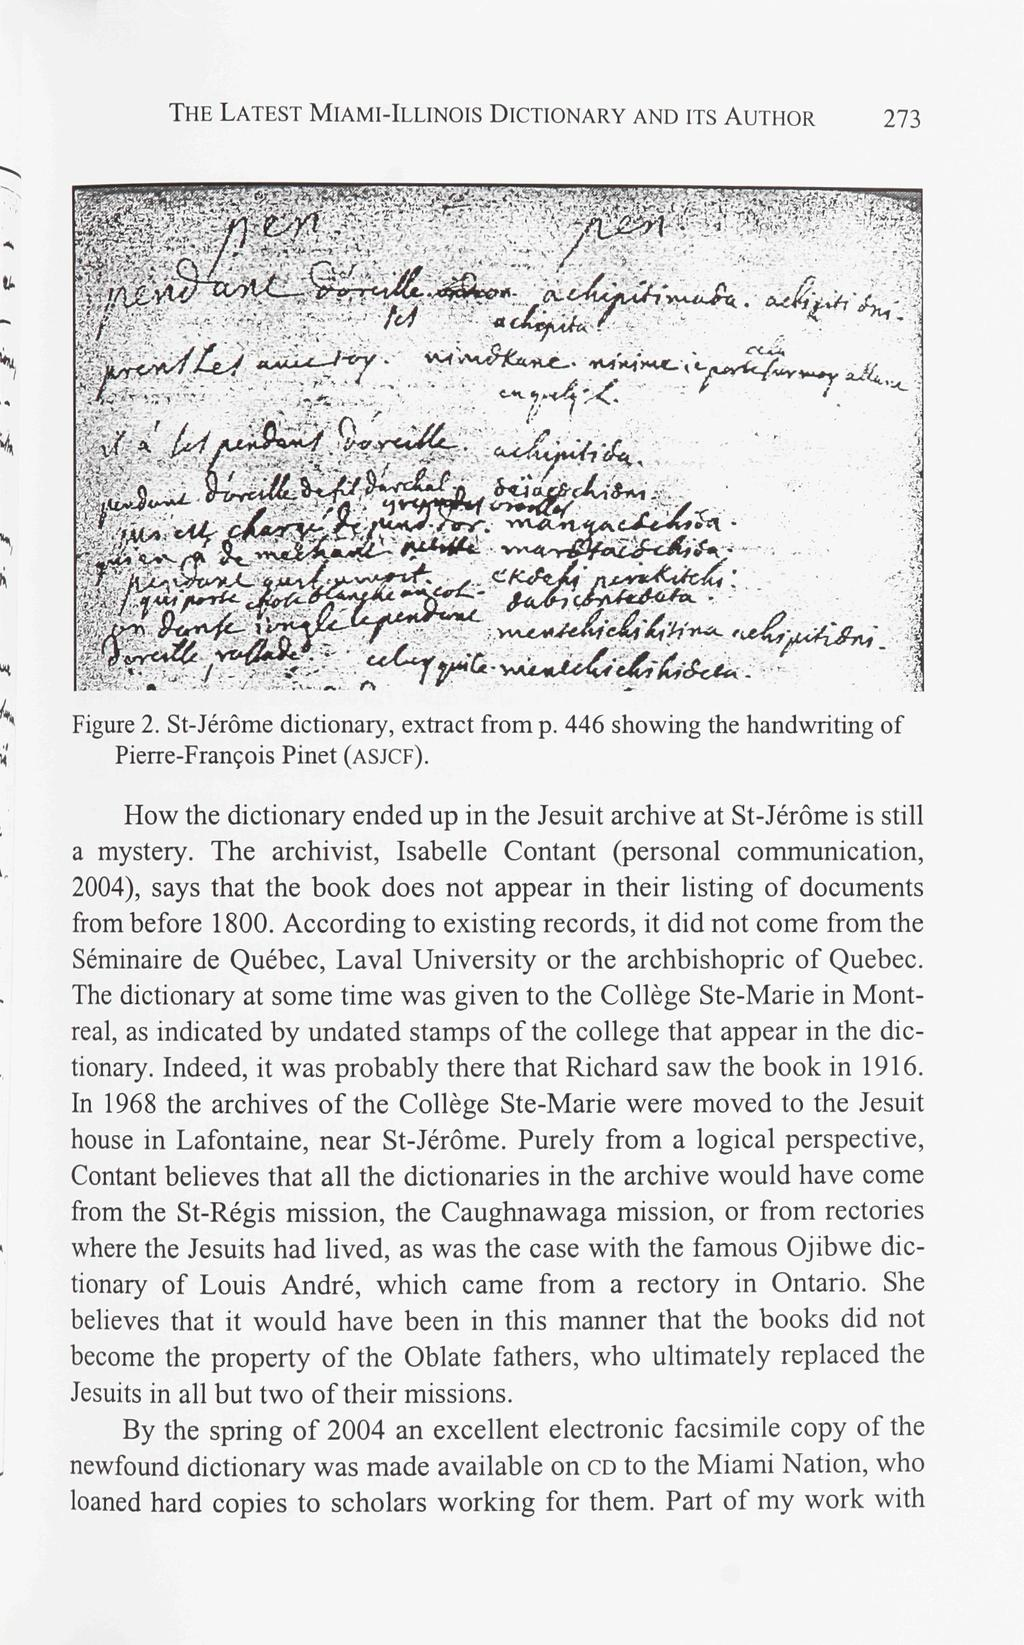 THE LATEST MIAMI-ILLINOIS DICTIONARY AND ITS AUTHOR 273 1 i Figure 2. St-Jerome dictionary, extract from p. 446 showing the handwriting of Pierre-Francois Pinet (ASJCF).